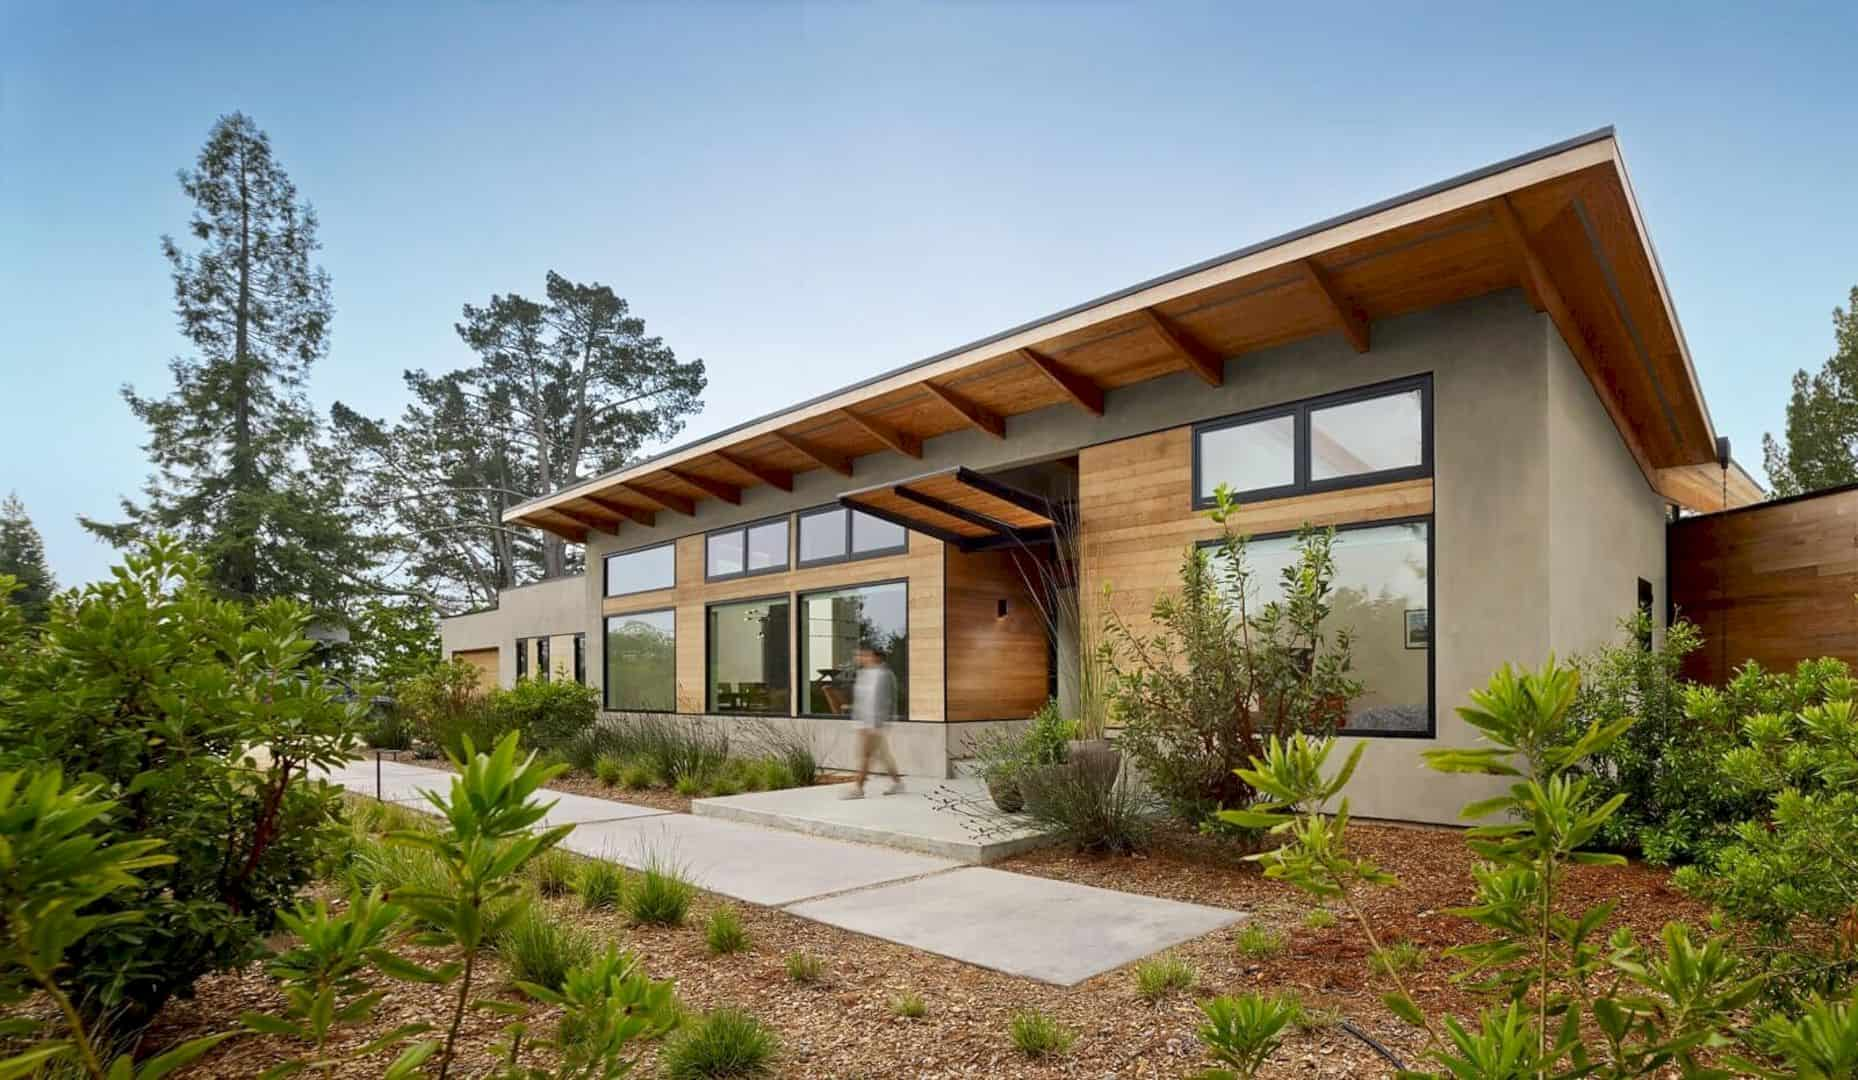 Golden Oak Residence A Light Filled House That Takes Advantage Of Its Bucolic Site 8